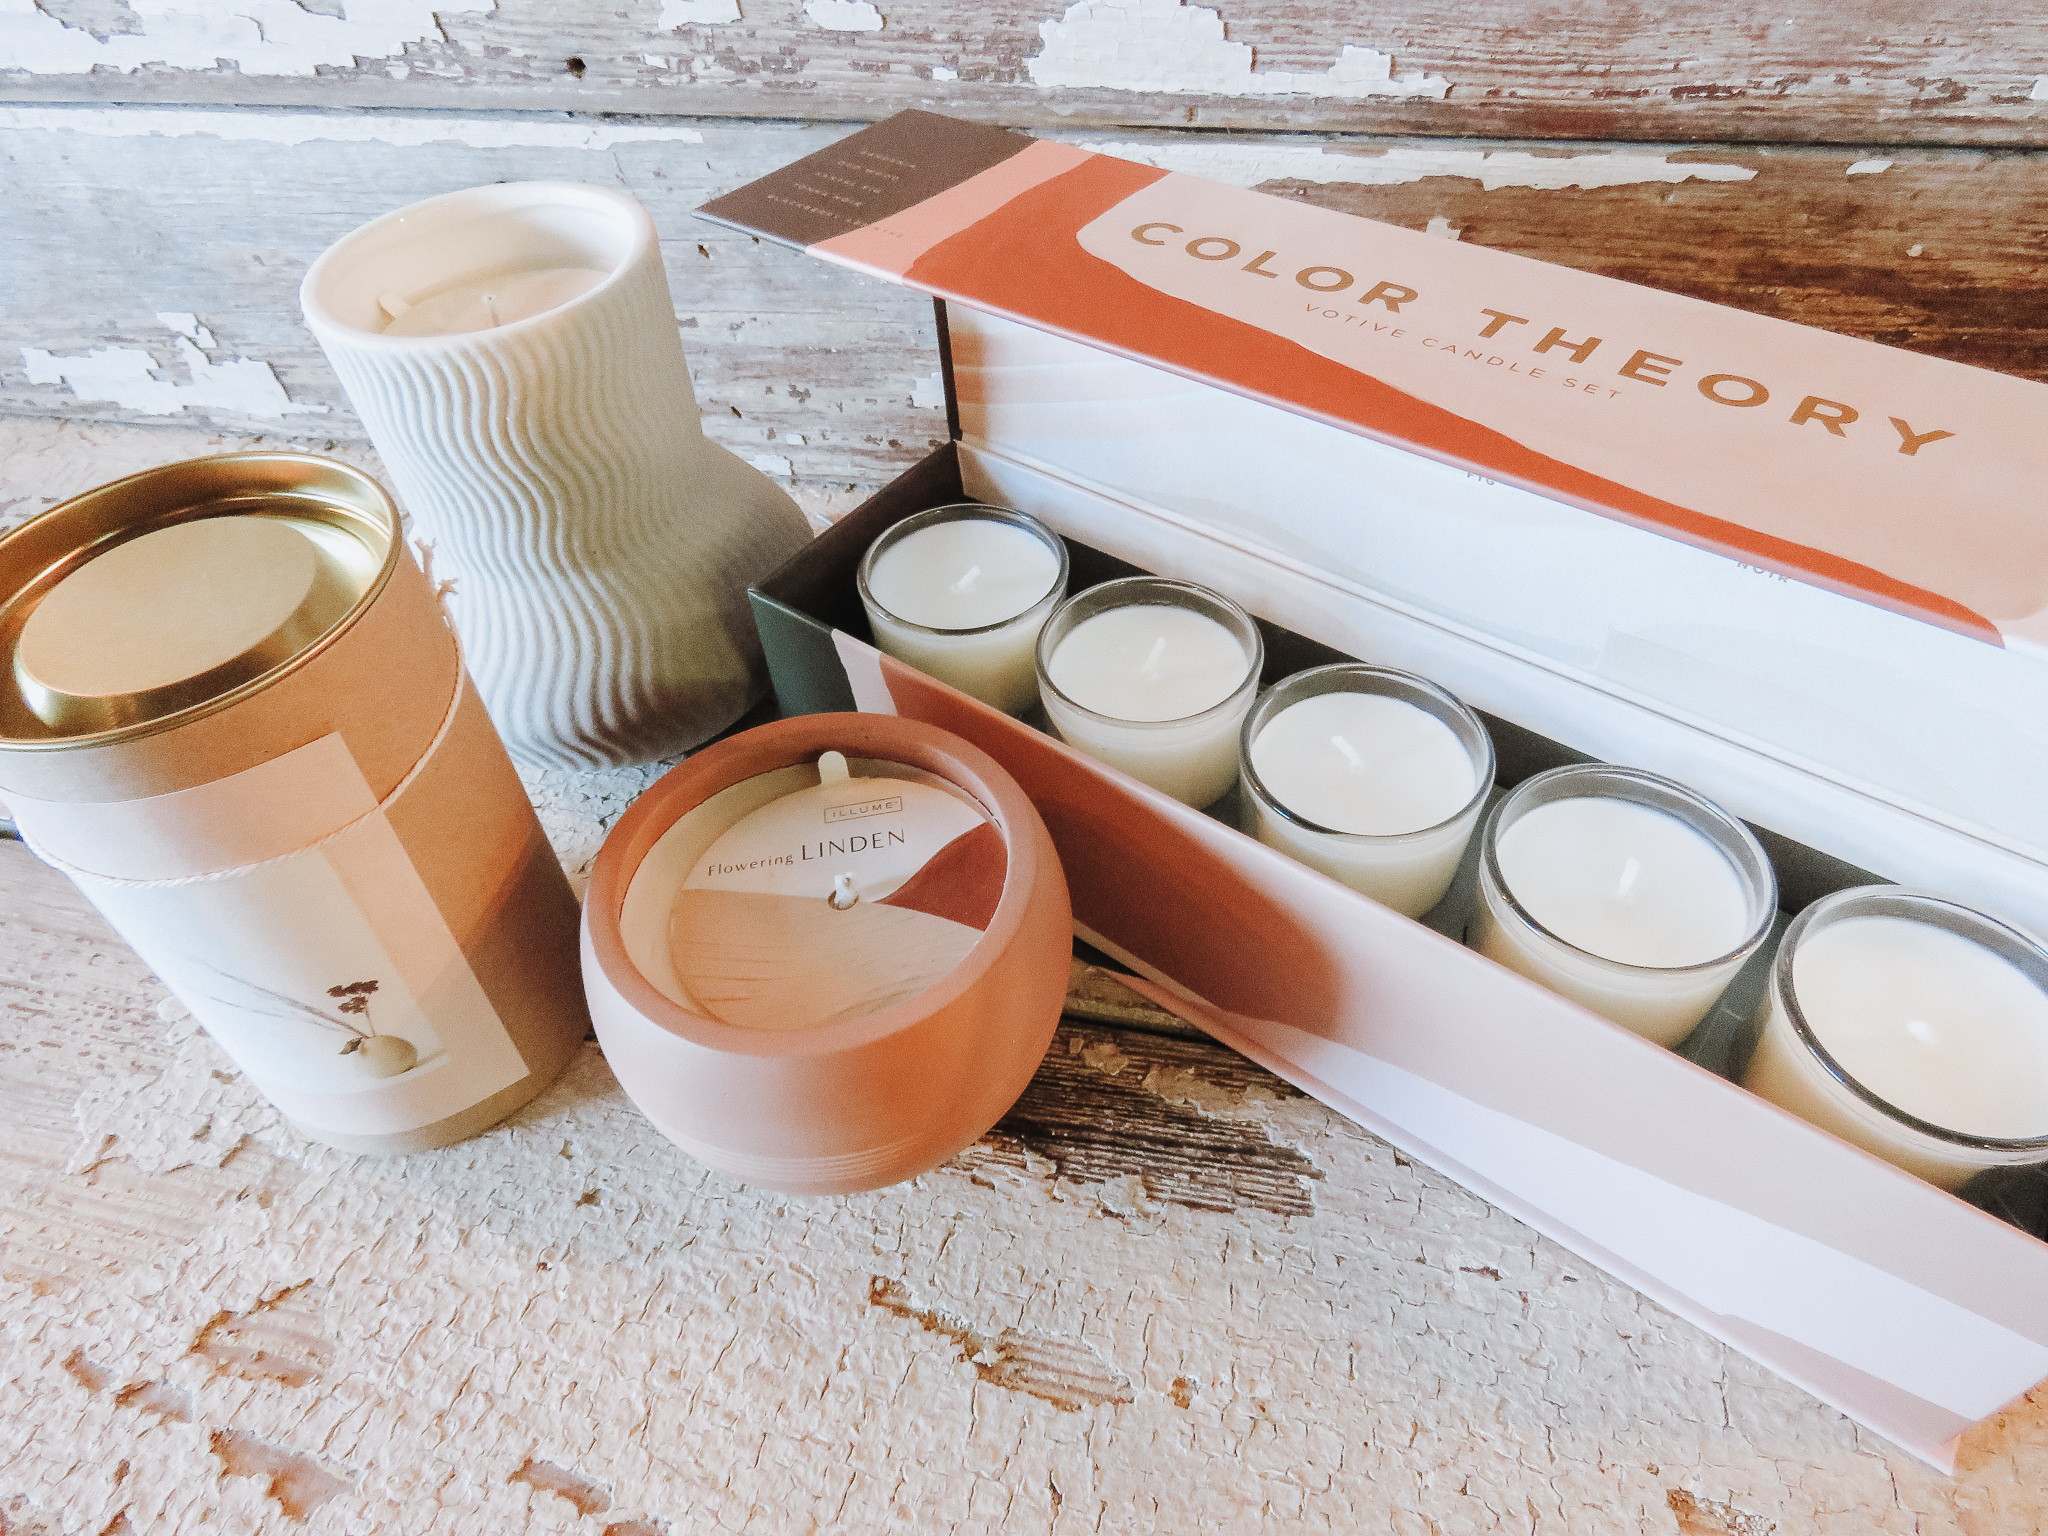 Say It With A Scent - There are some GREAT new candles in stock. A classic gift that is sure to be enjoyed!